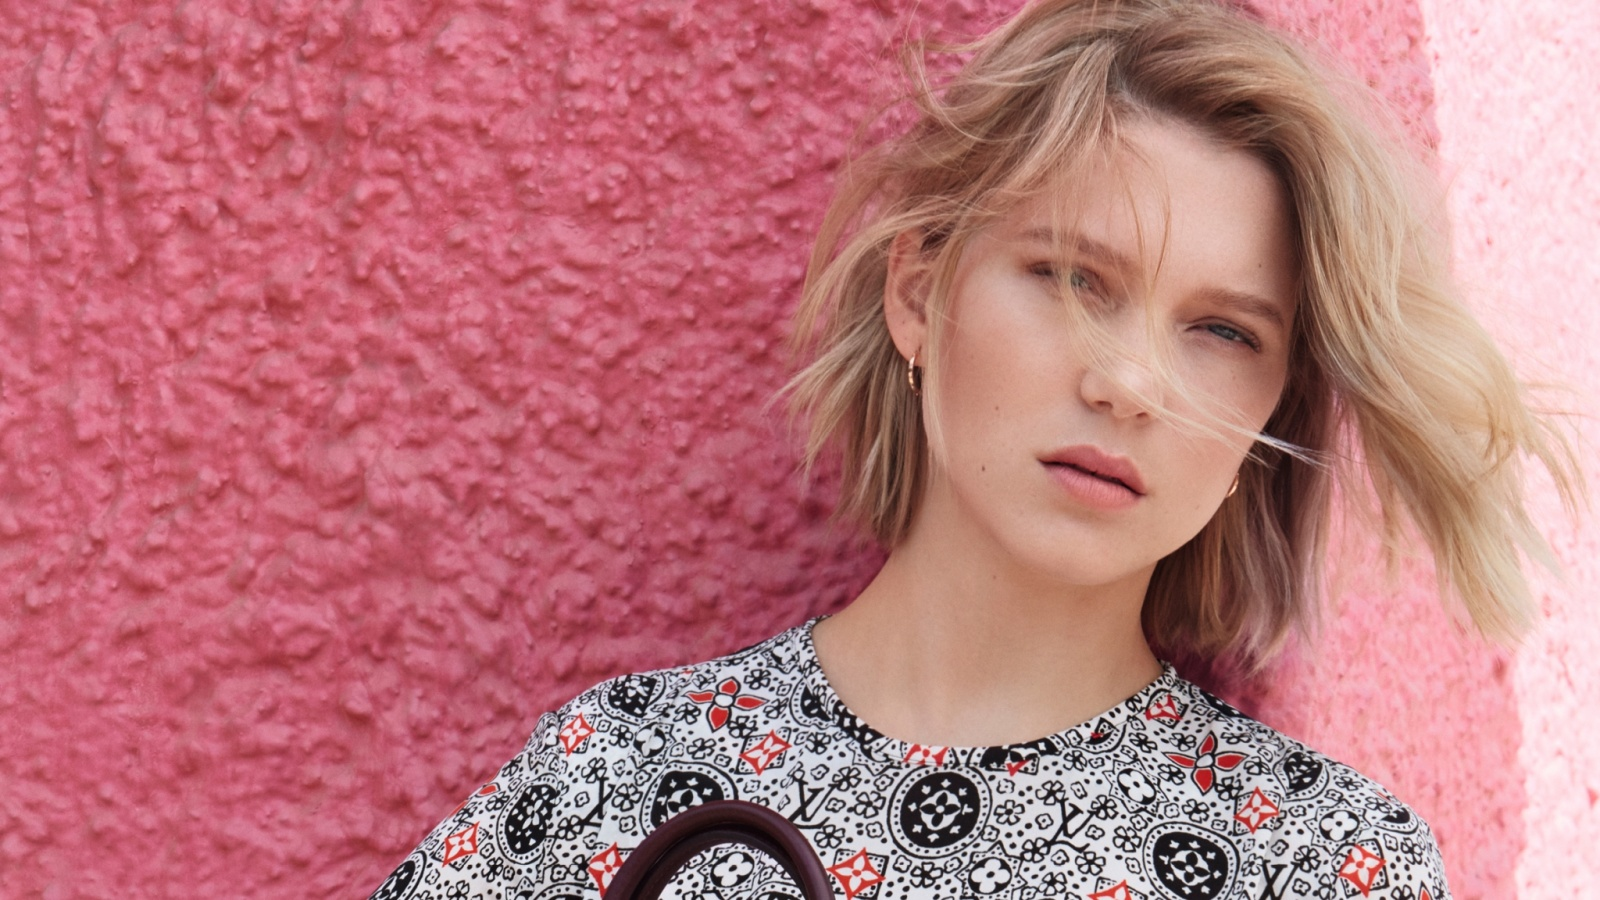 awesome lea seydoux image hd download